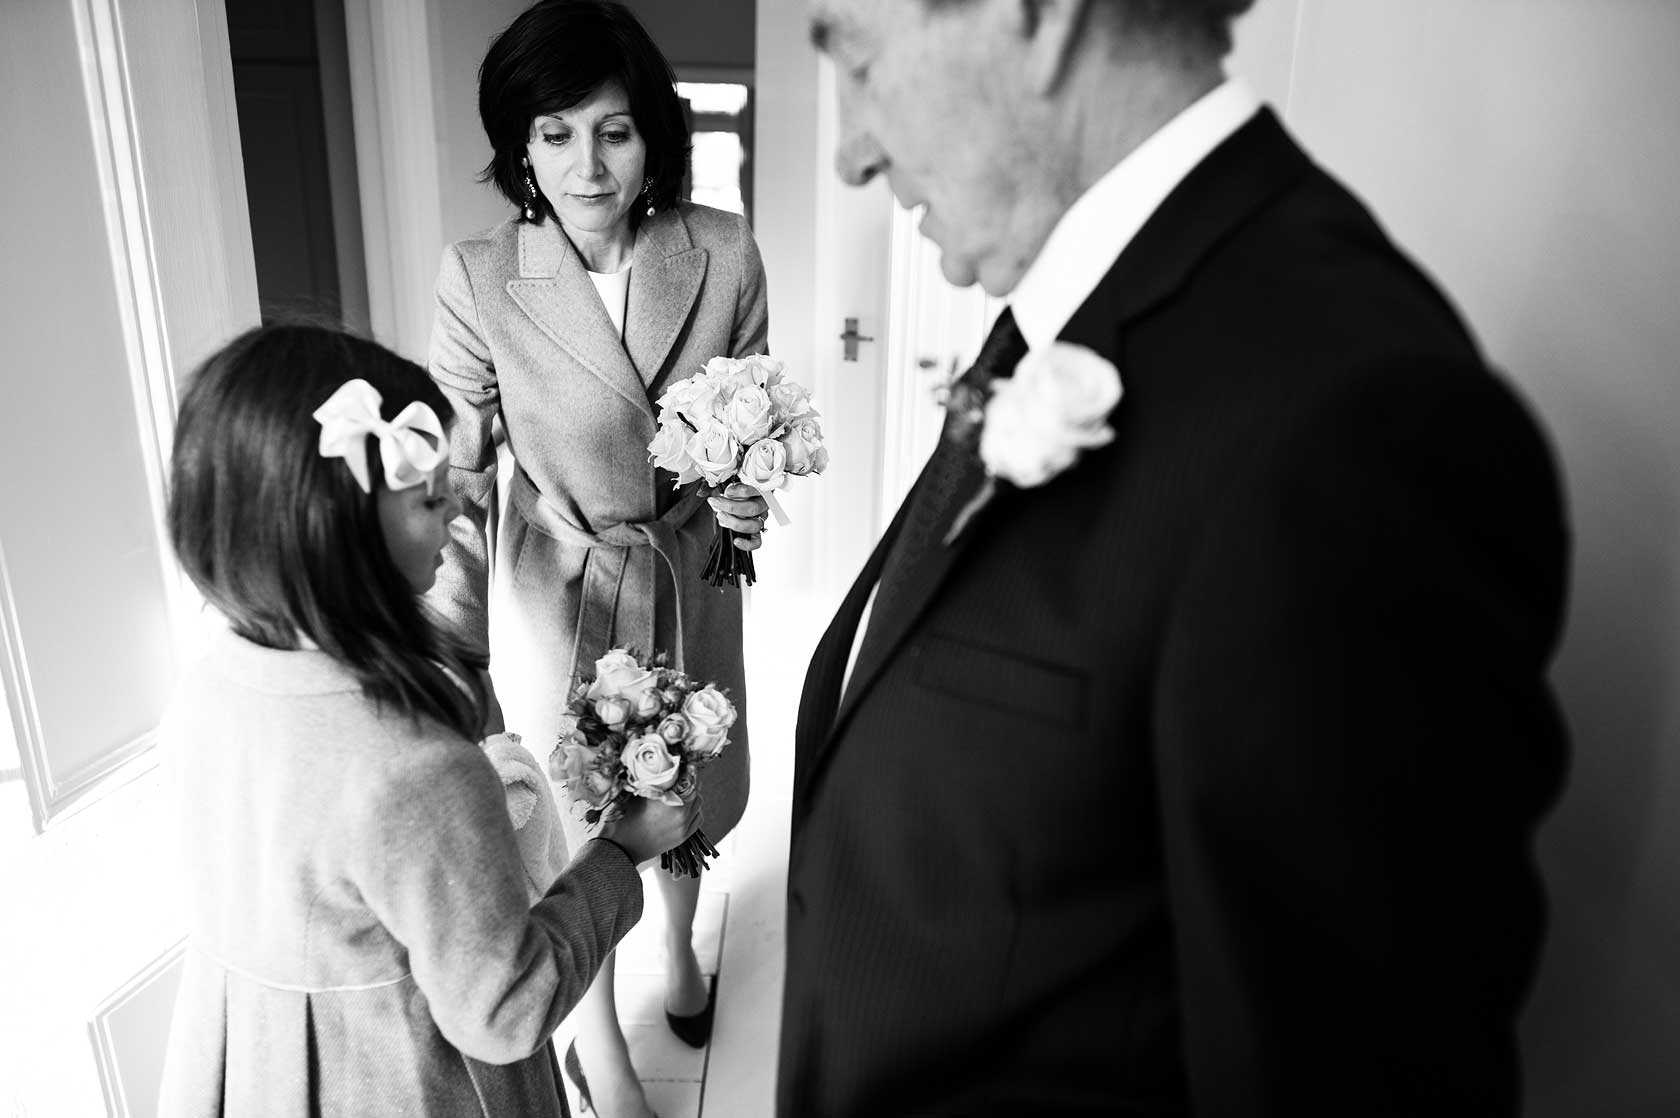 Reportage Wedding Photography at Chelsea Old Town Hall